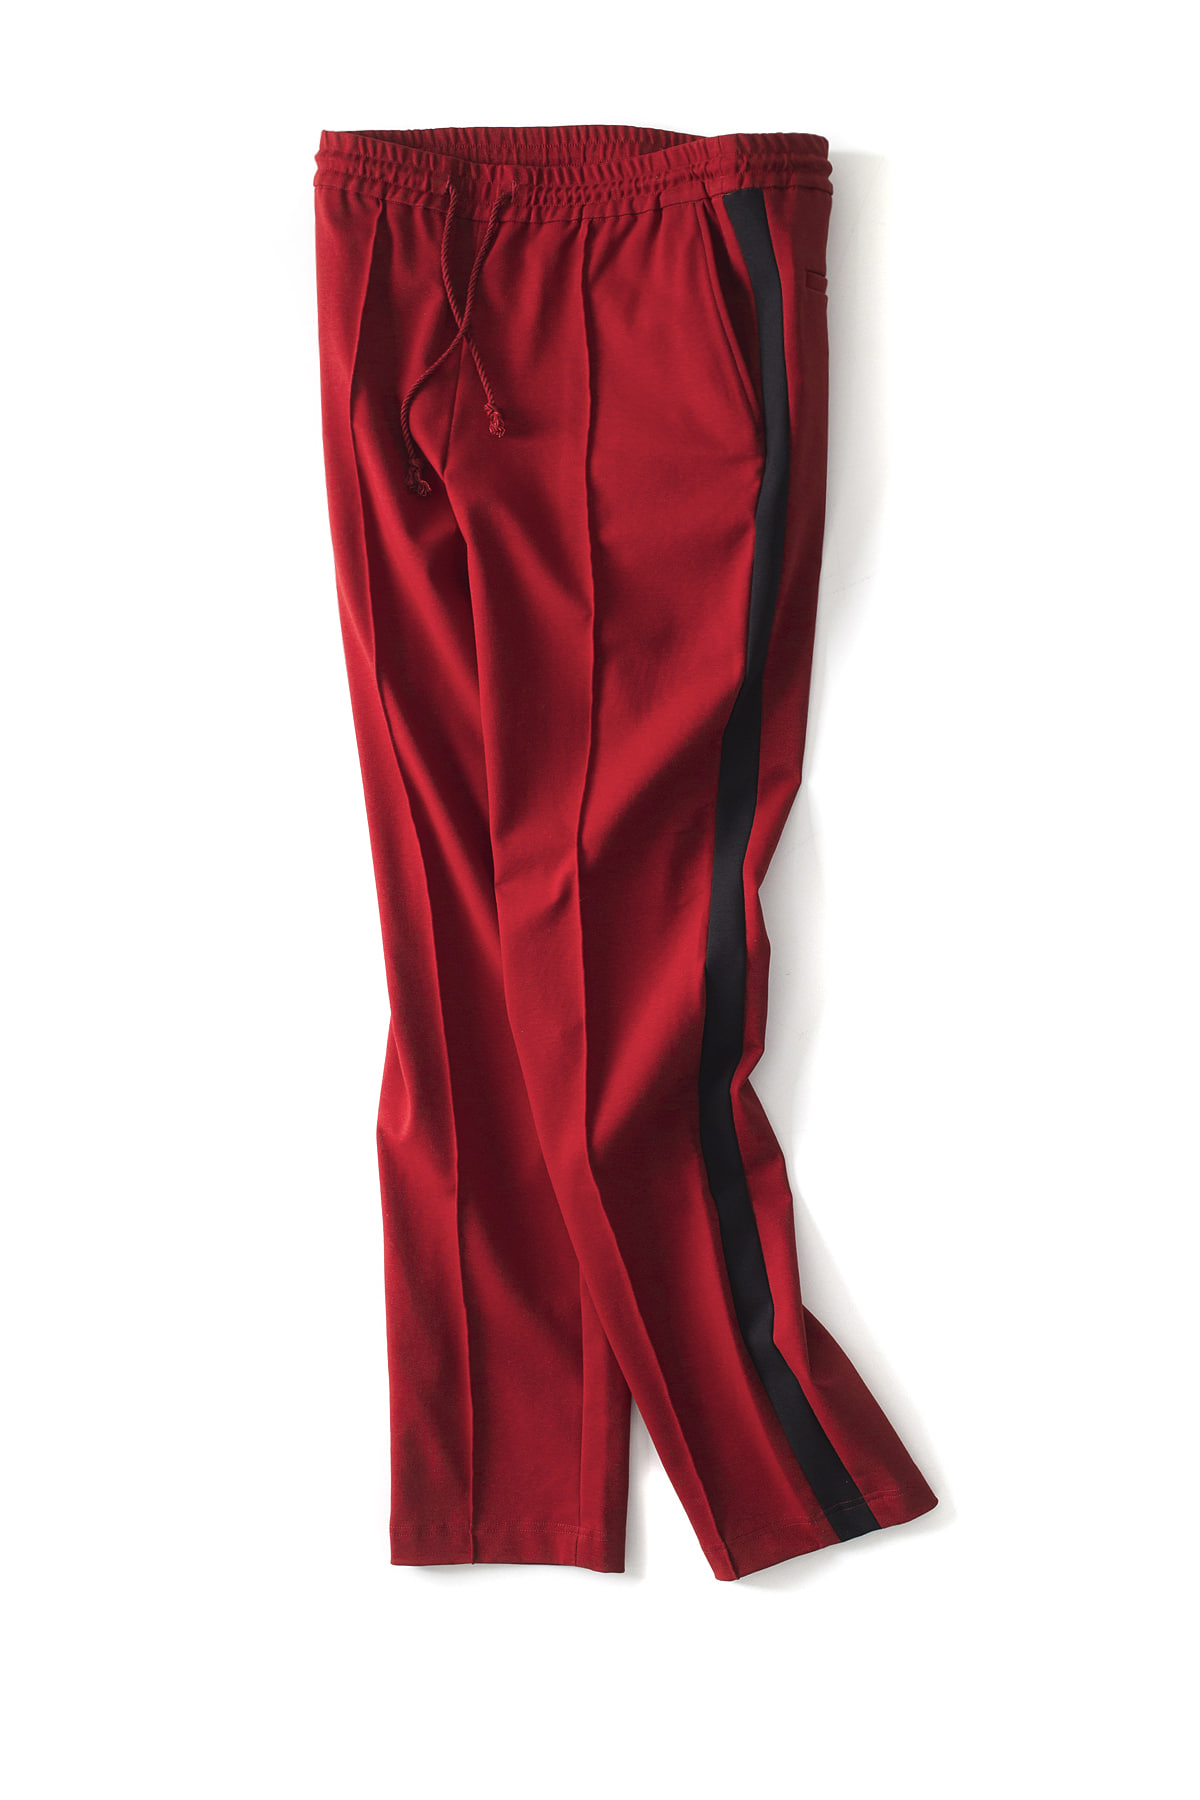 JOHN LAWRENCE SULLIVAN : Line Track Pants (Red)